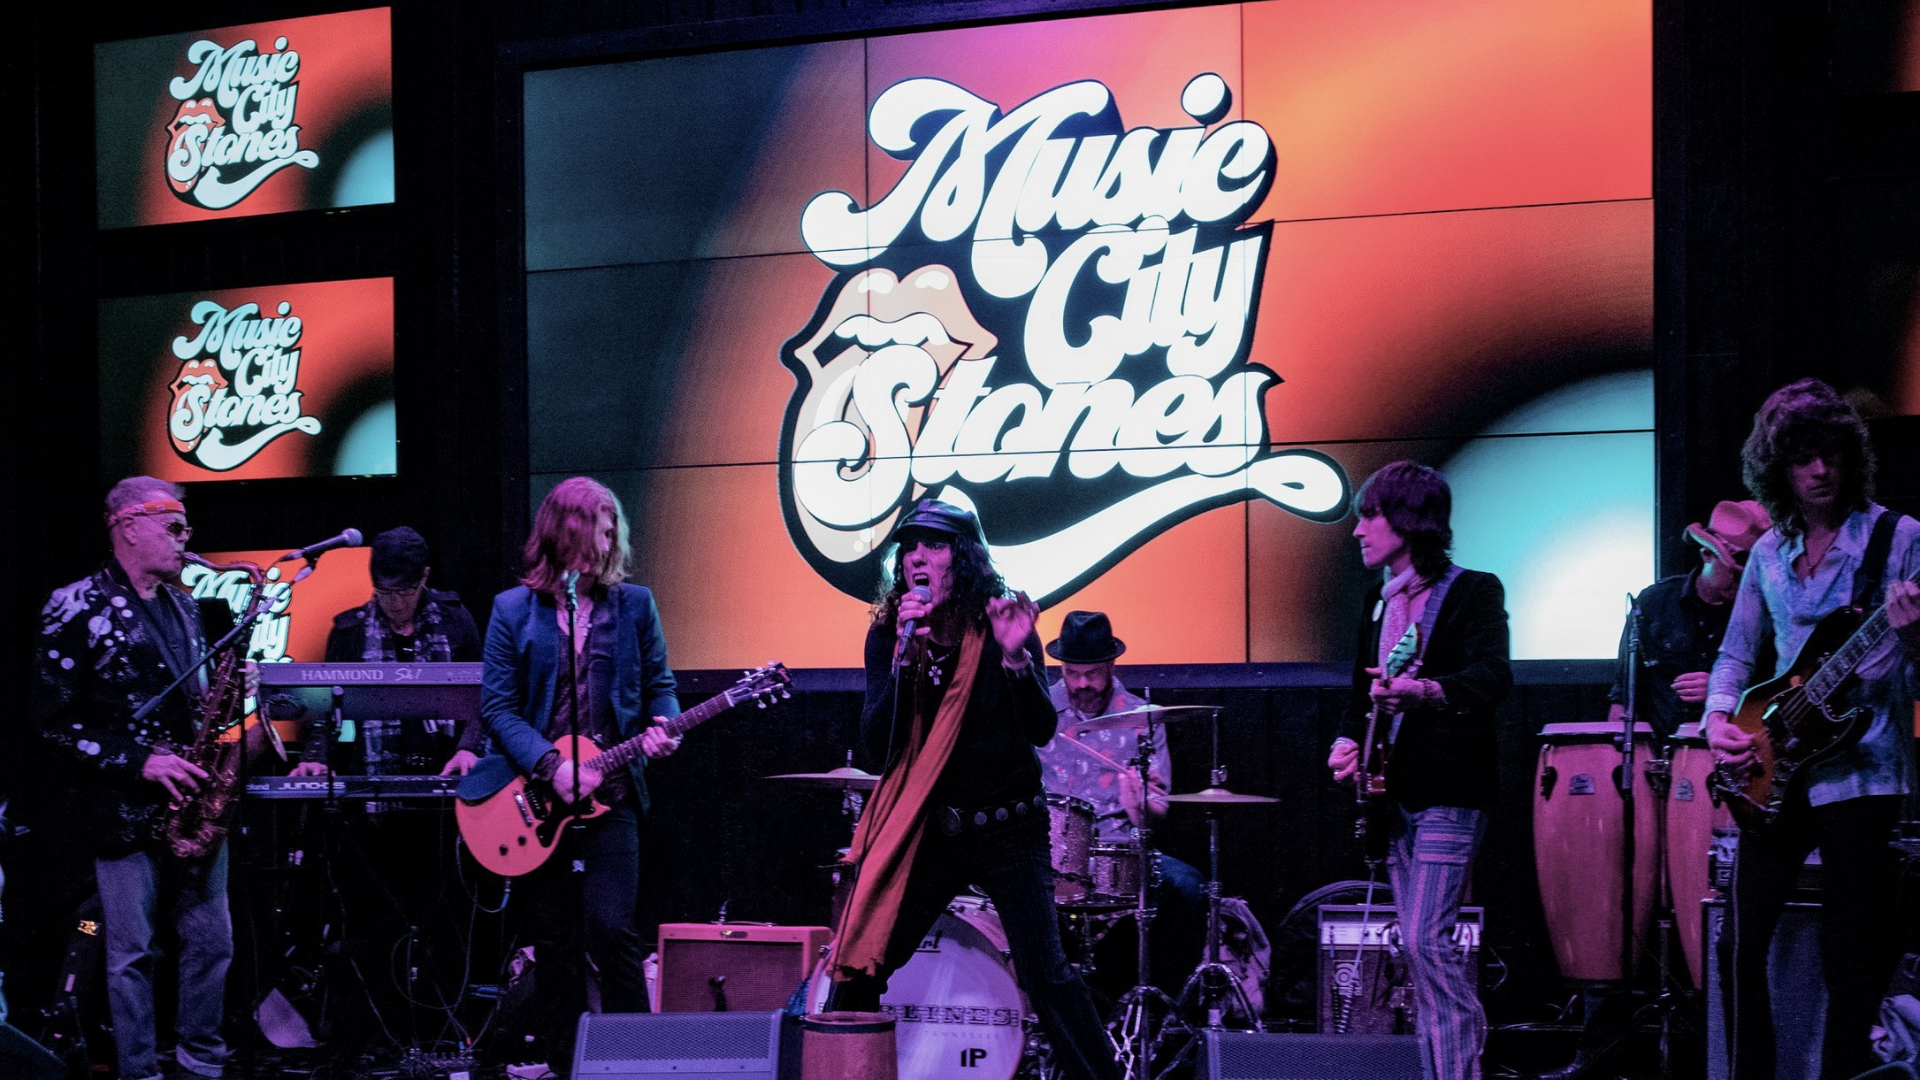 Promo image of Rolling Stones Tribute: Music City Stones on Skydeck